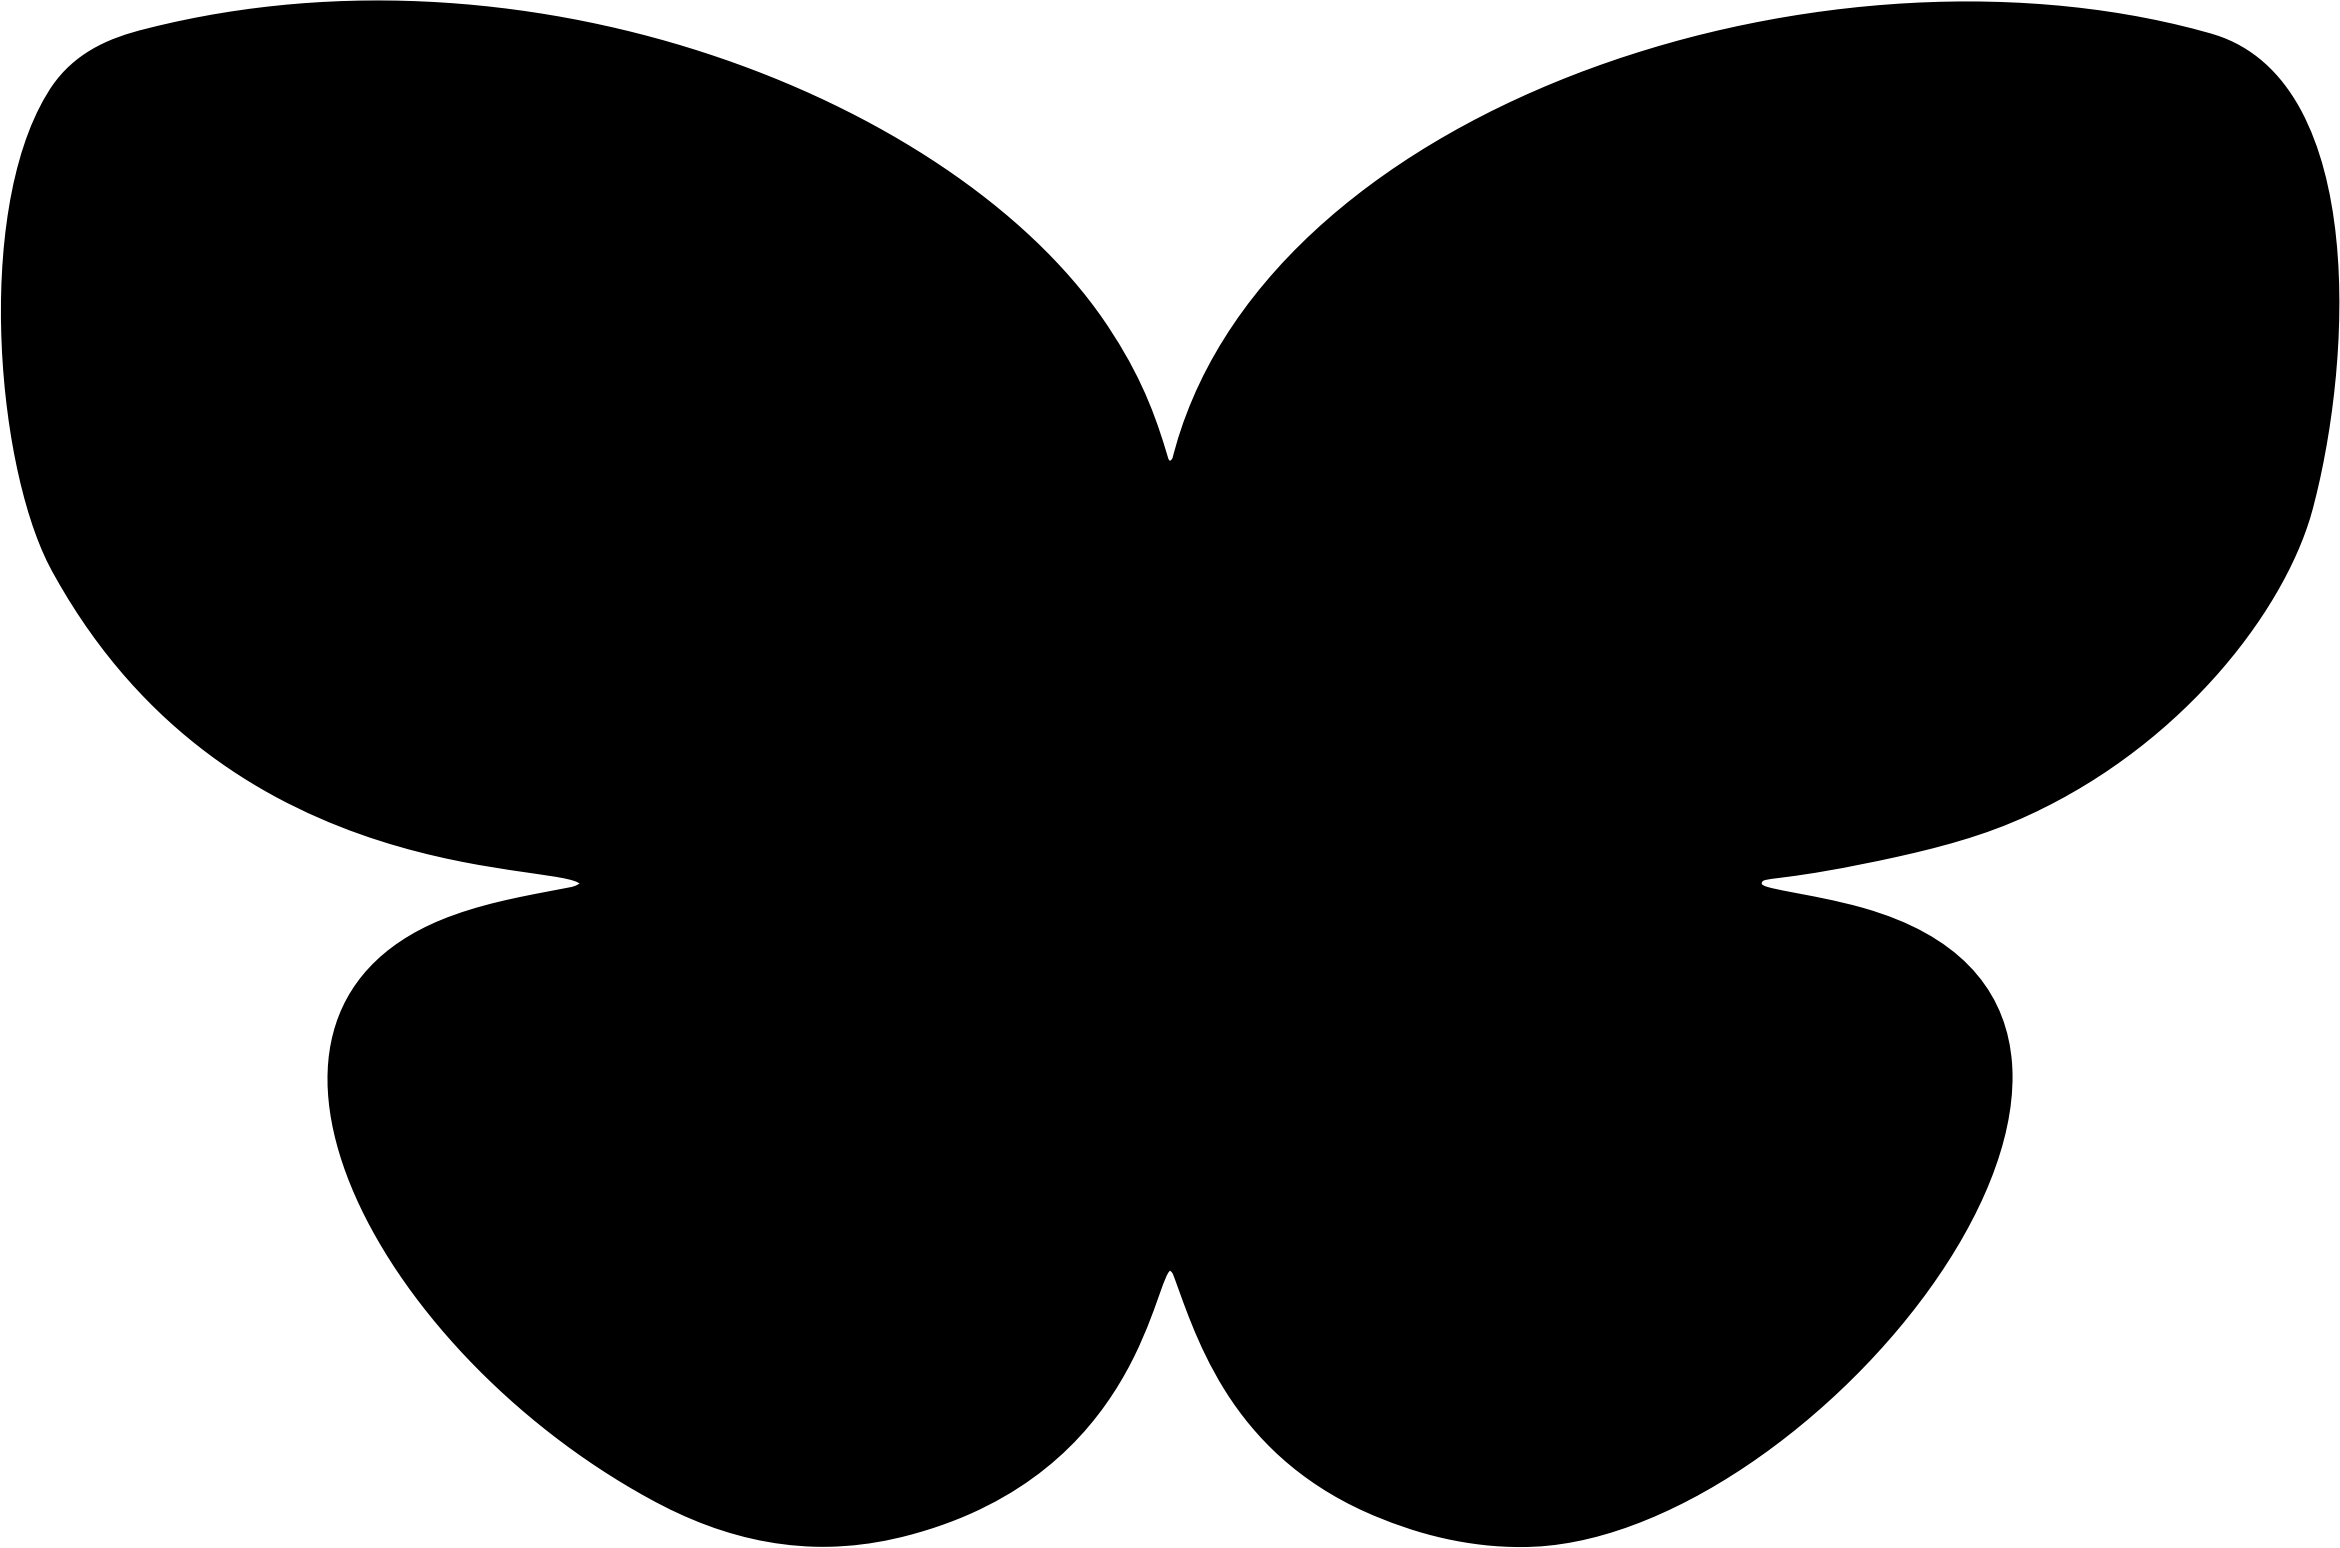 Clipart Simple Butterfly Silhouette